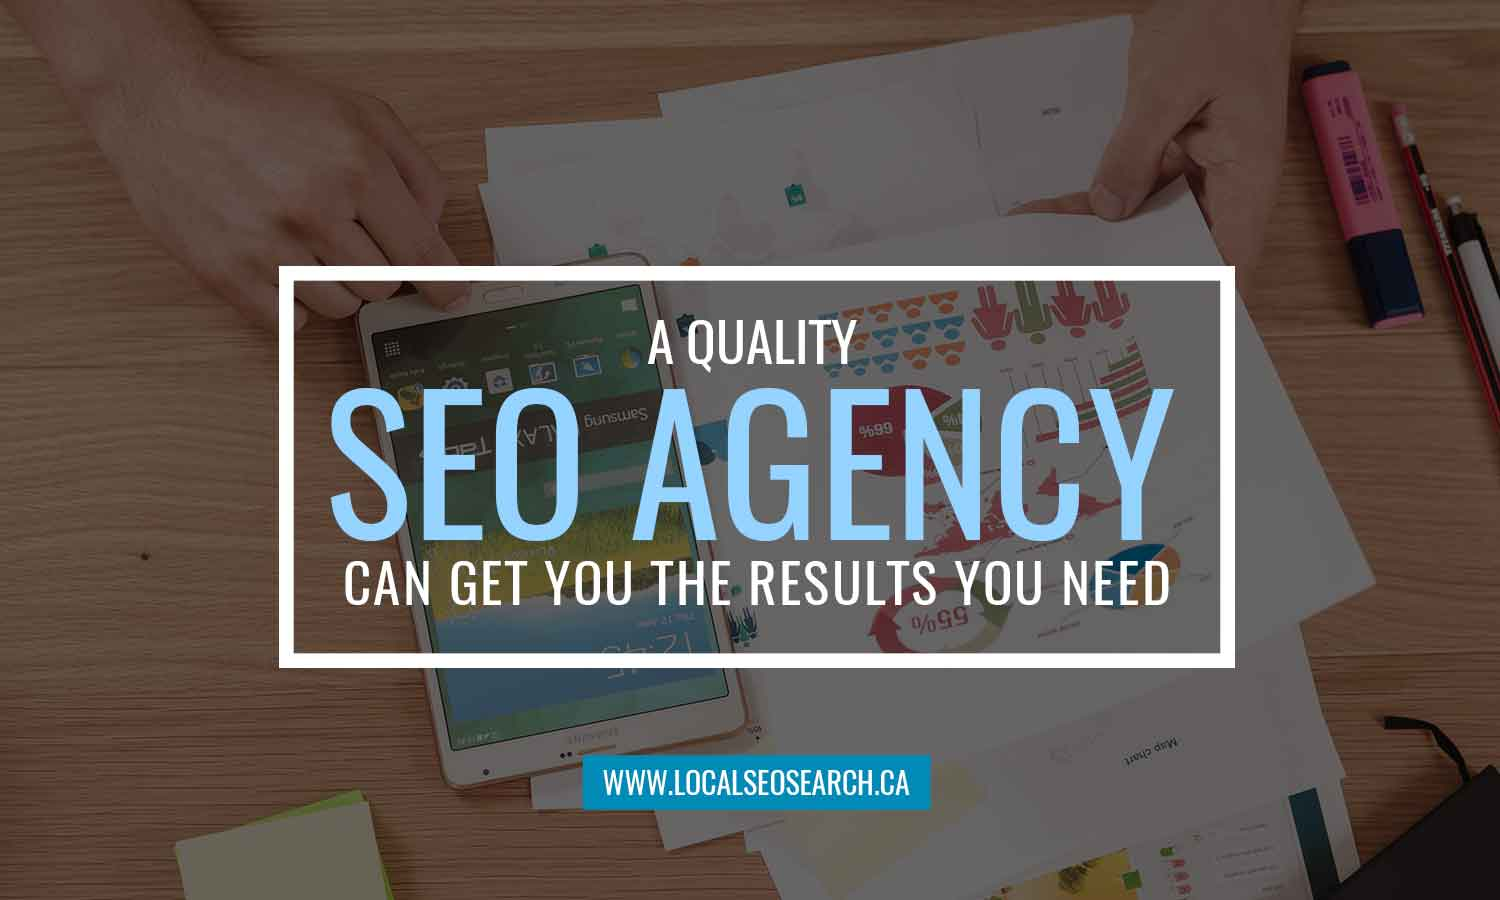 A-quality-SEO-agency-can-get-you-the-results-you-need